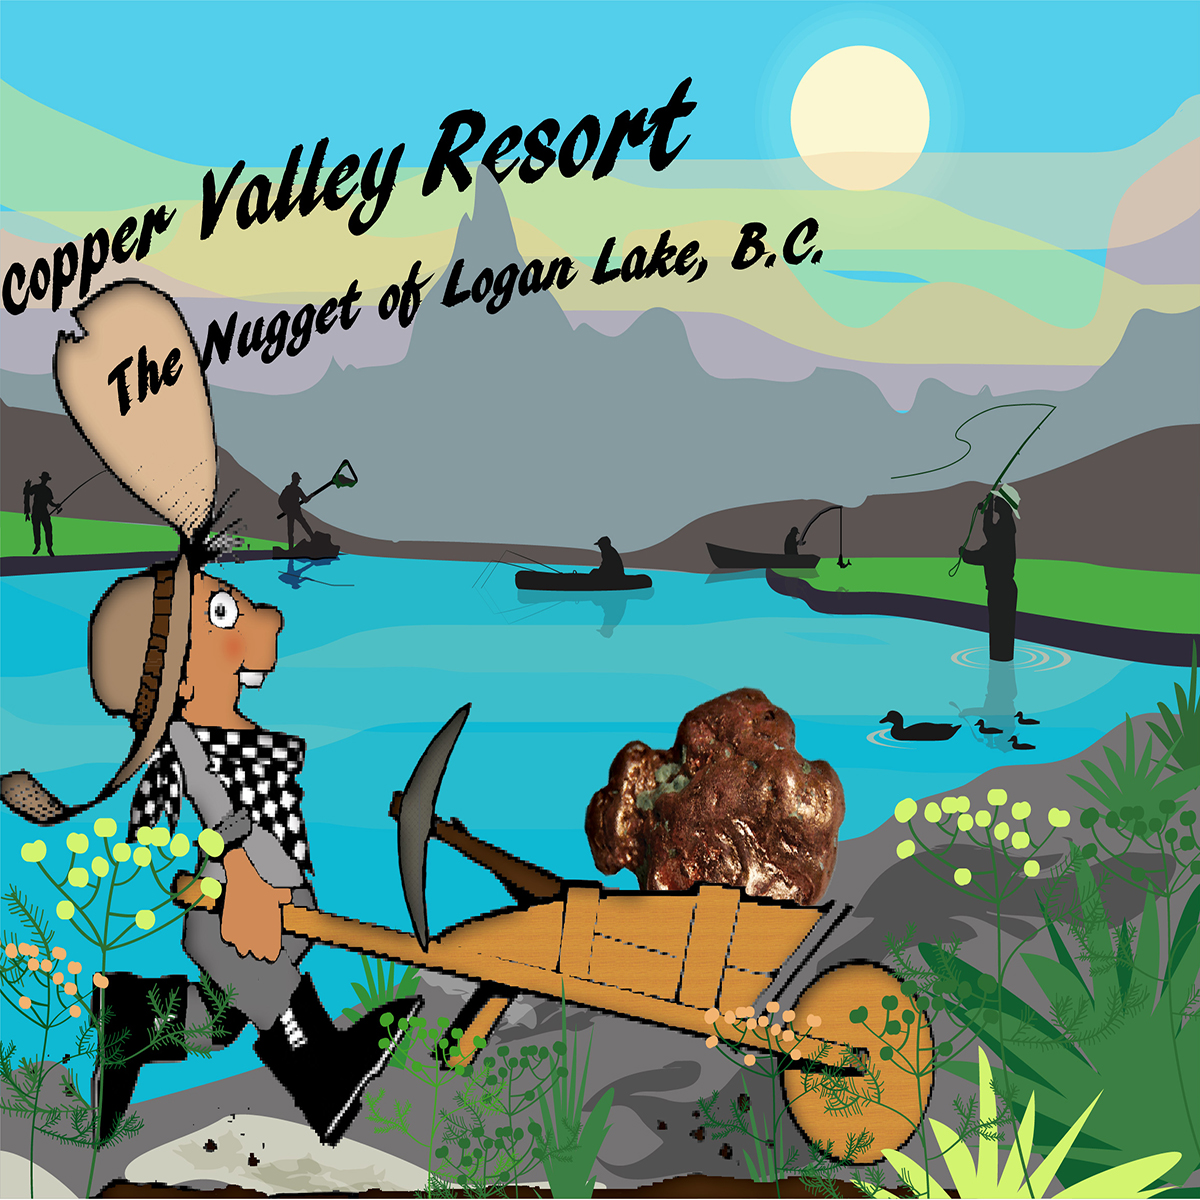 Copper Valley Resort Photo